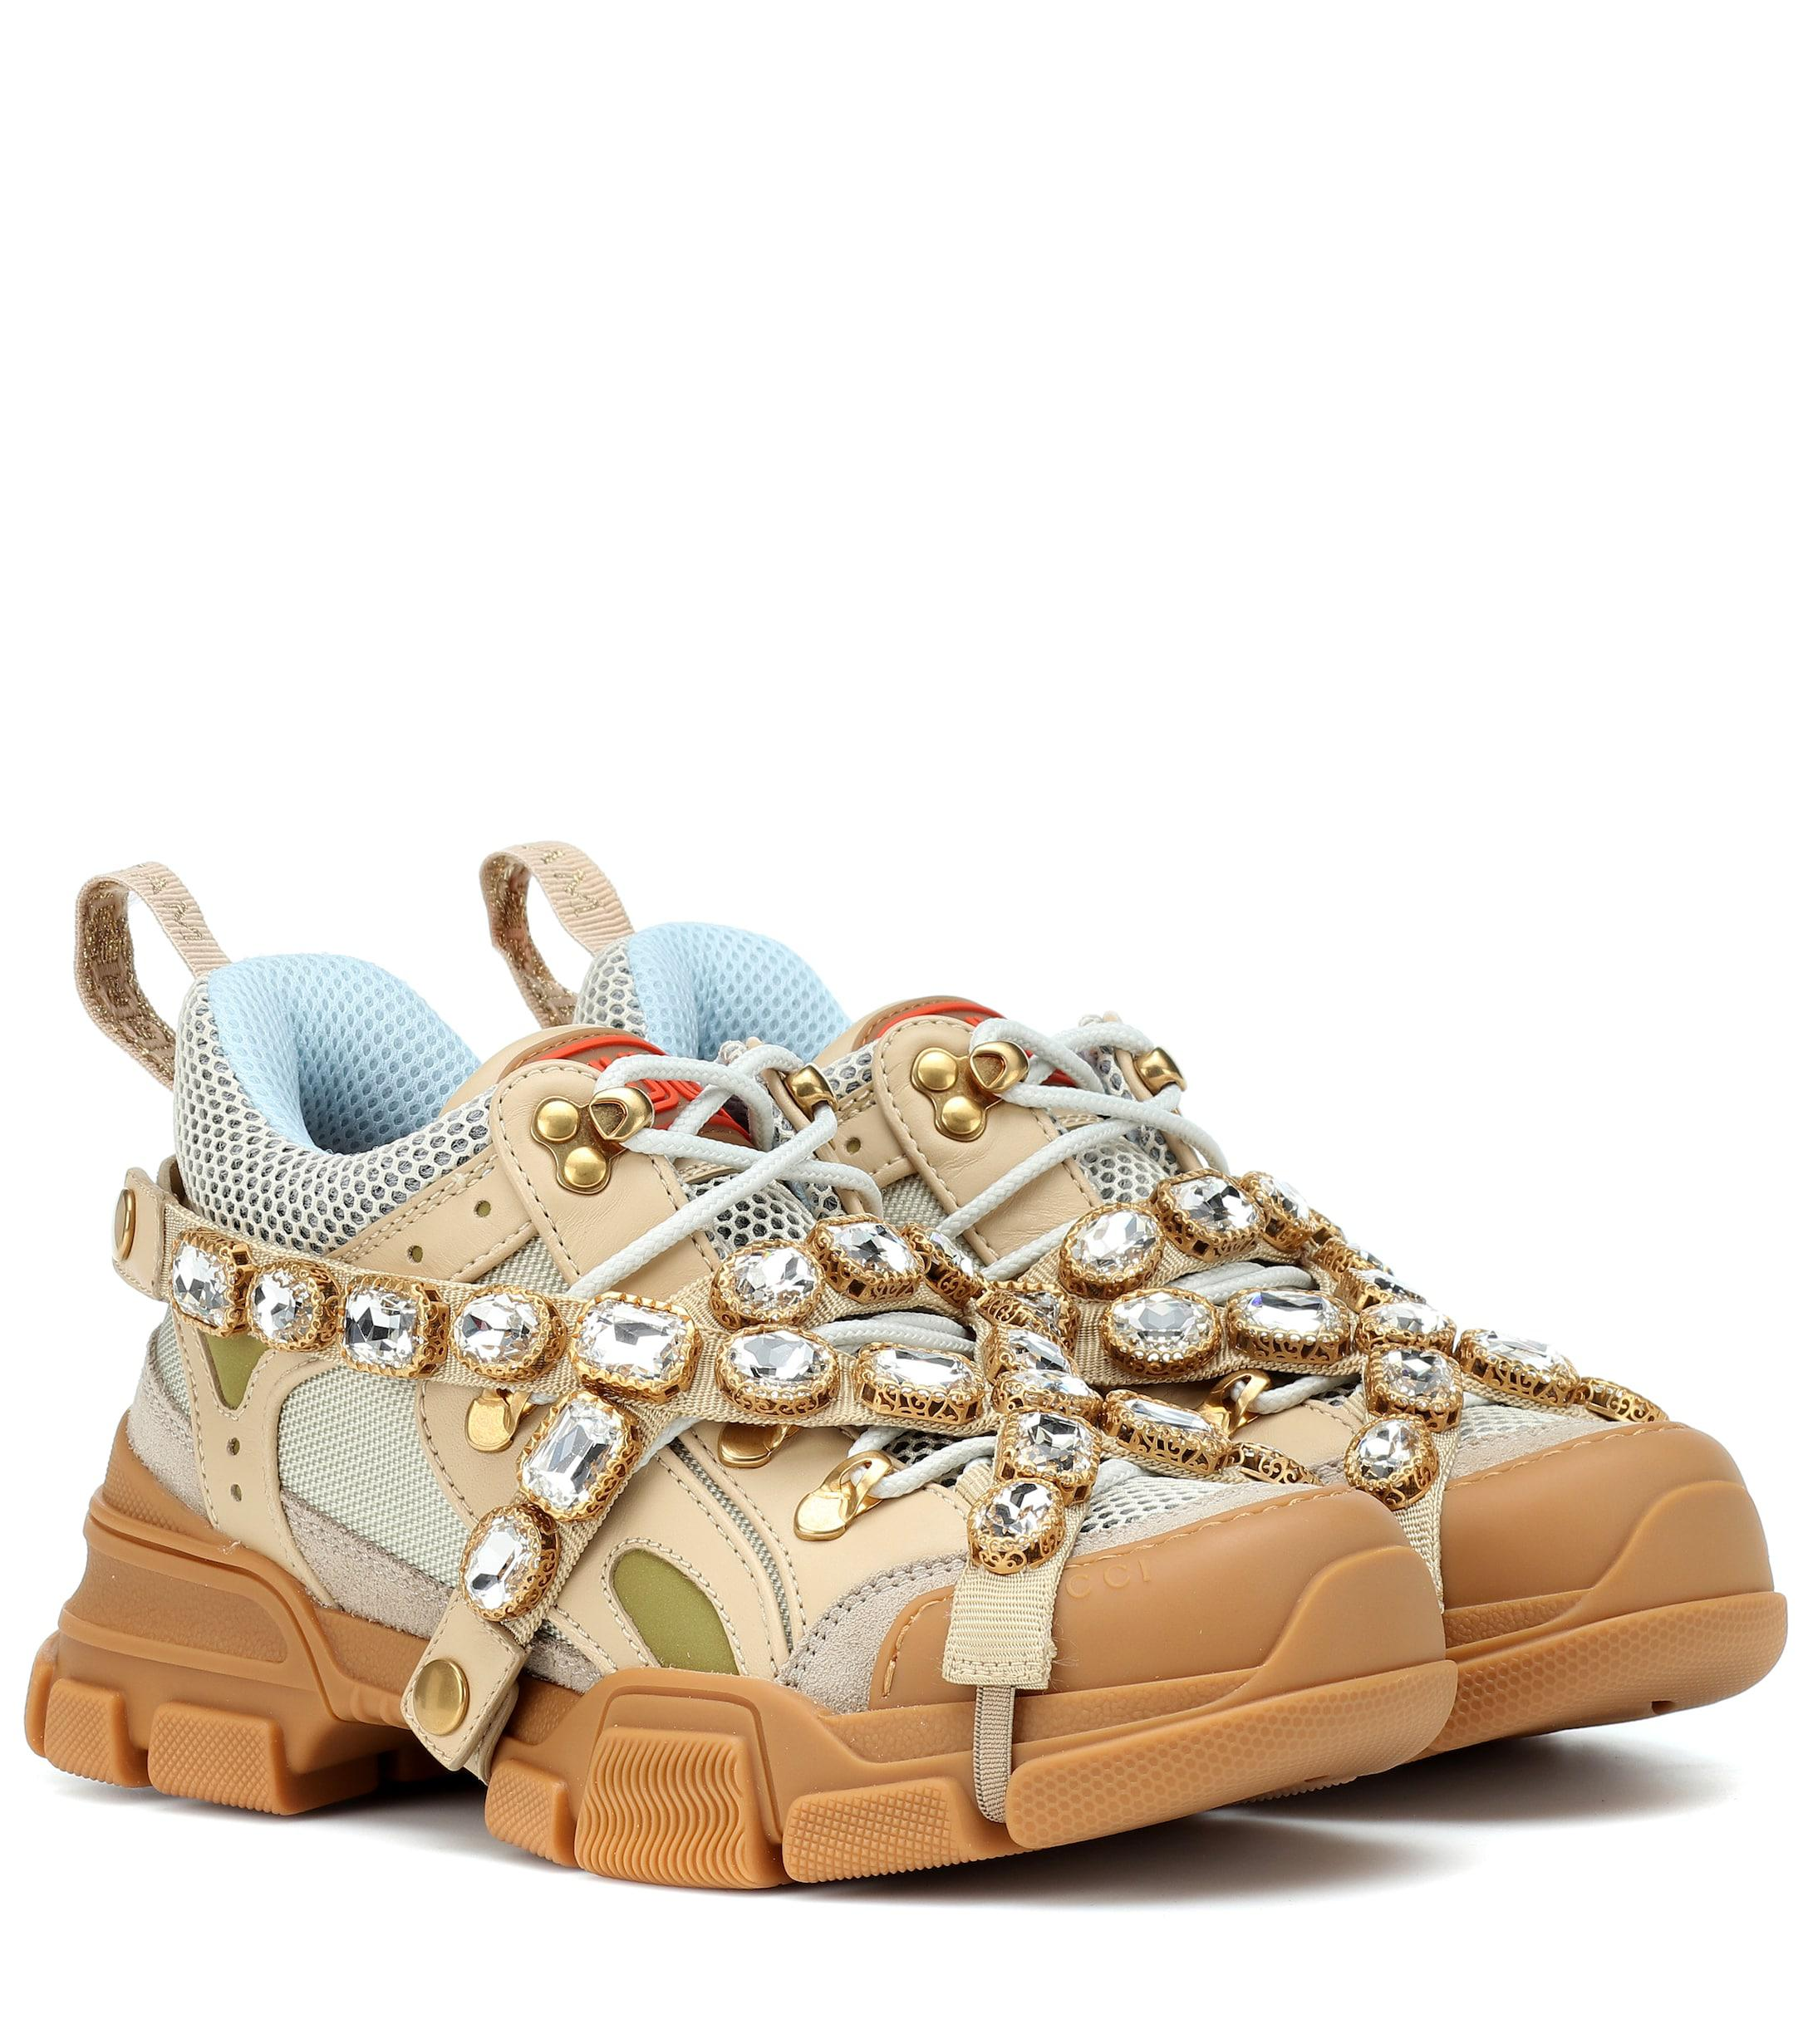 ac852c7535d3 Gucci Flashtrek Embellished Sneakers - Save 1% - Lyst